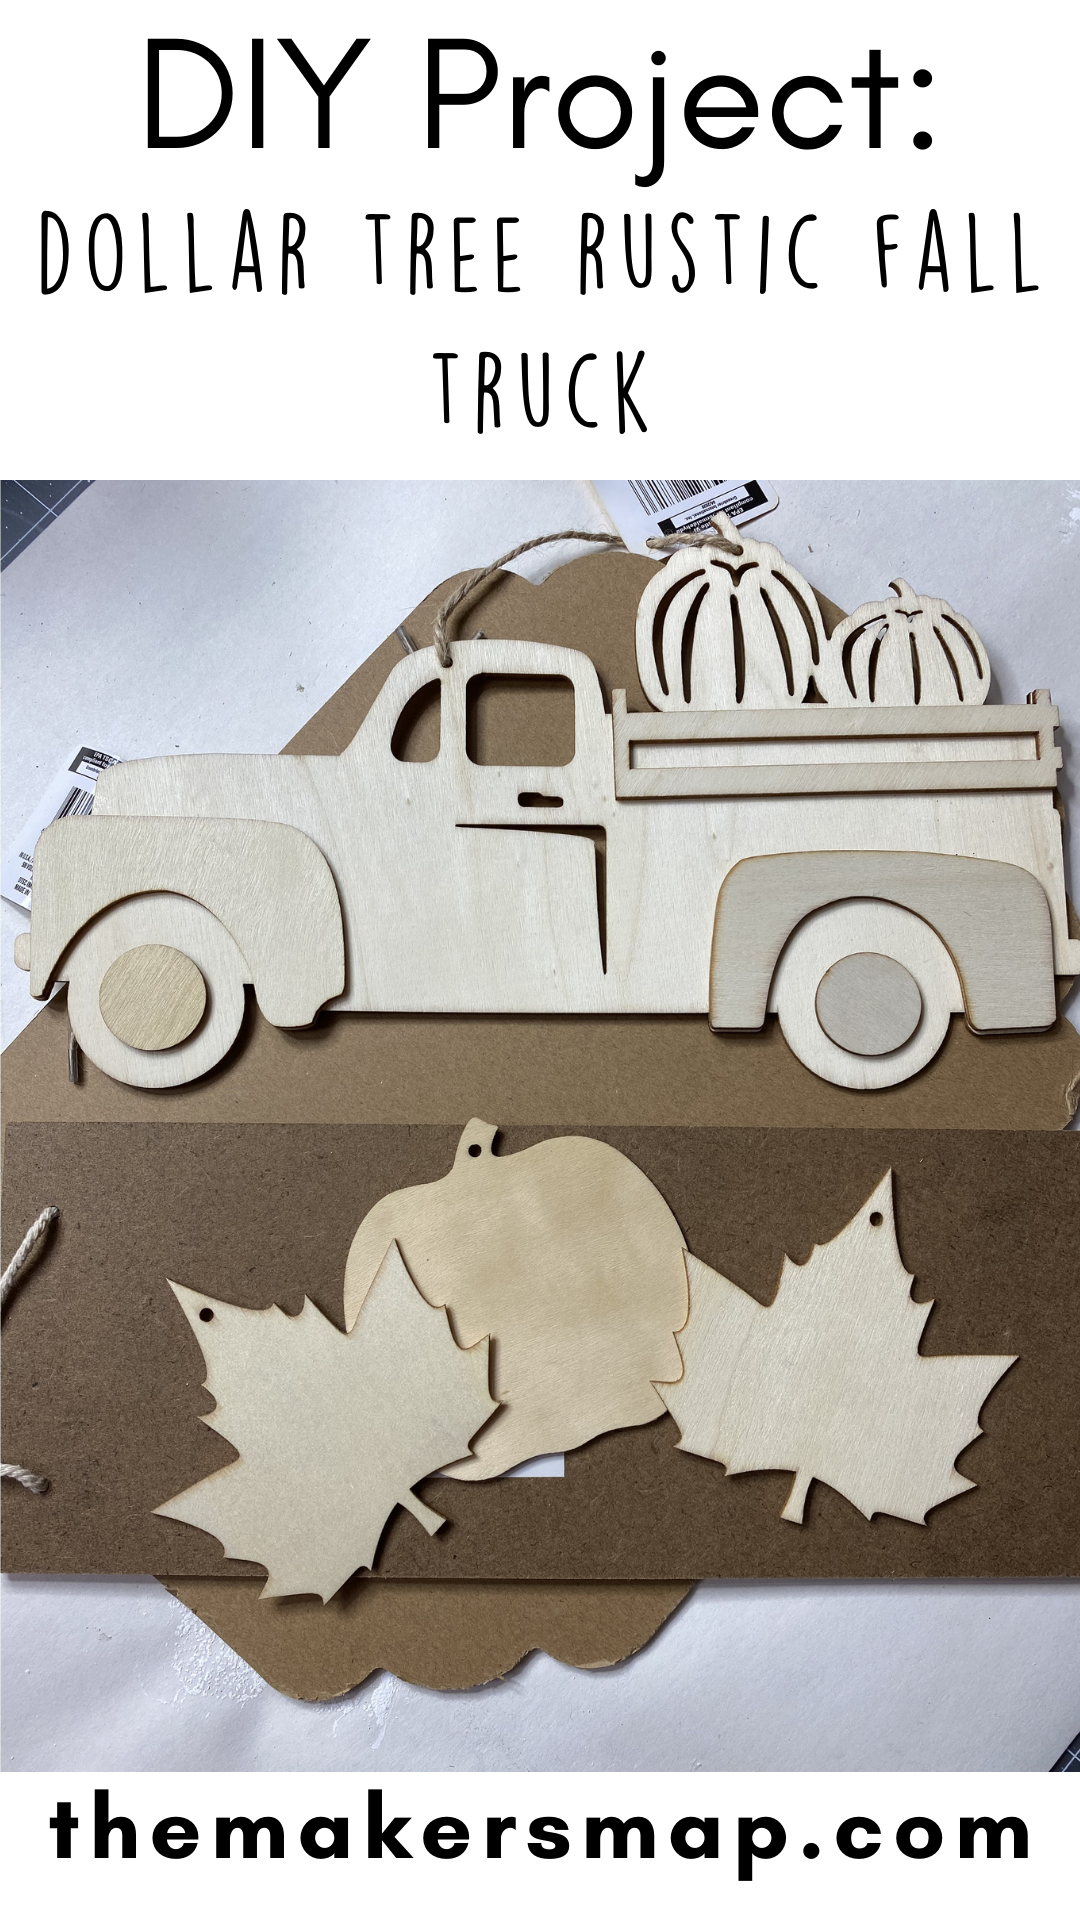 Dollar Tree Rustic Fall Truck DIY Supplies Pin